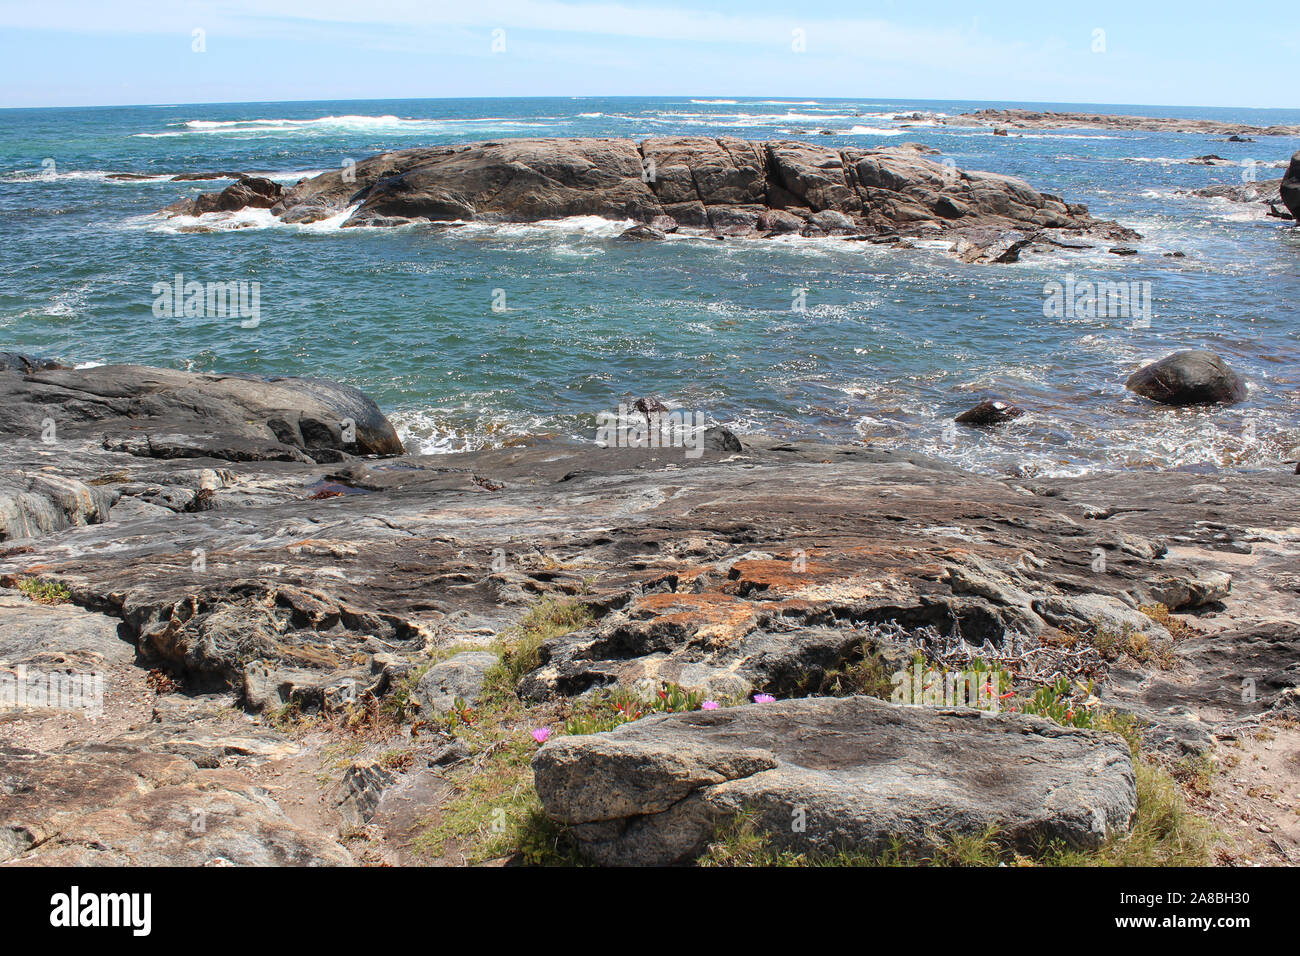 A few kilometers from Cape Leeuwin, Western Australia, where the Indian and Southern Oceans meet this scenic view is seen from the Skippy Rock lookout. Stock Photo